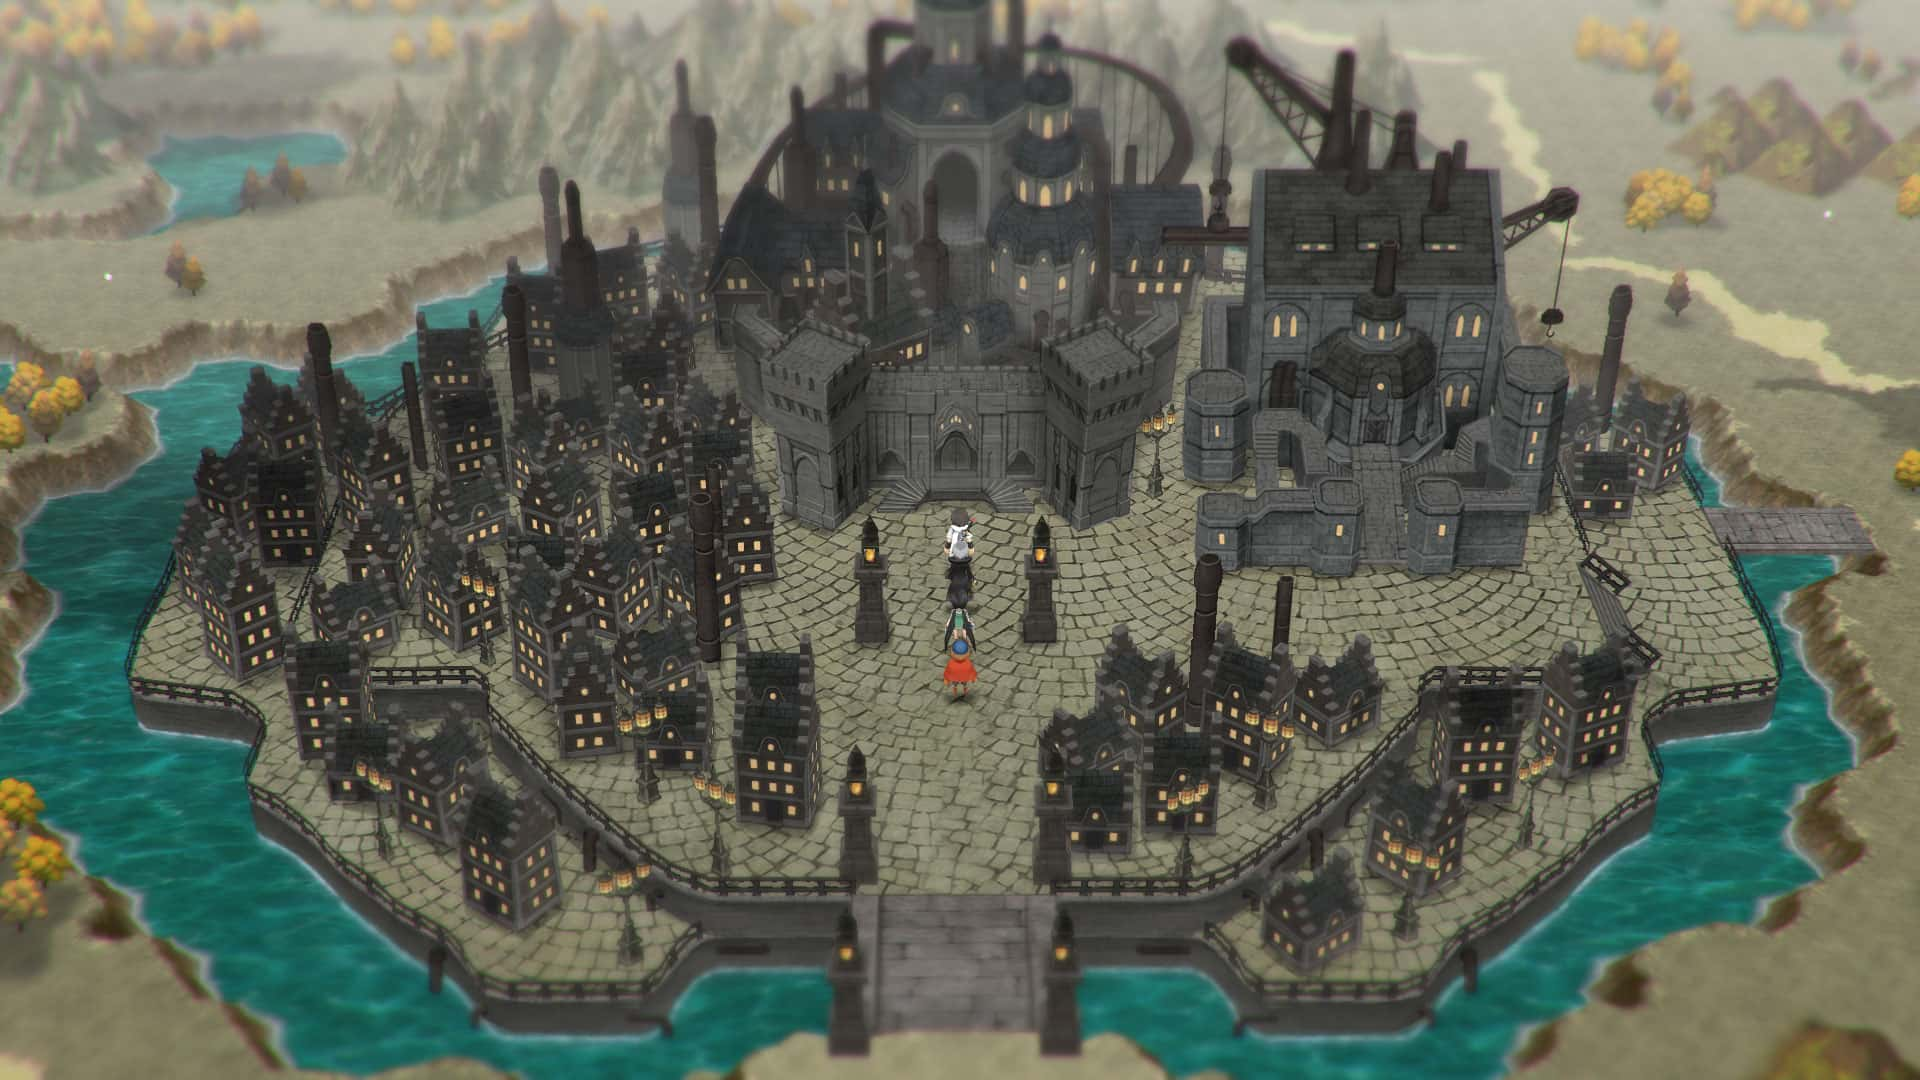 Lost Sphear, from the developers of I Am Setuna, is out soon in Japan screenshot